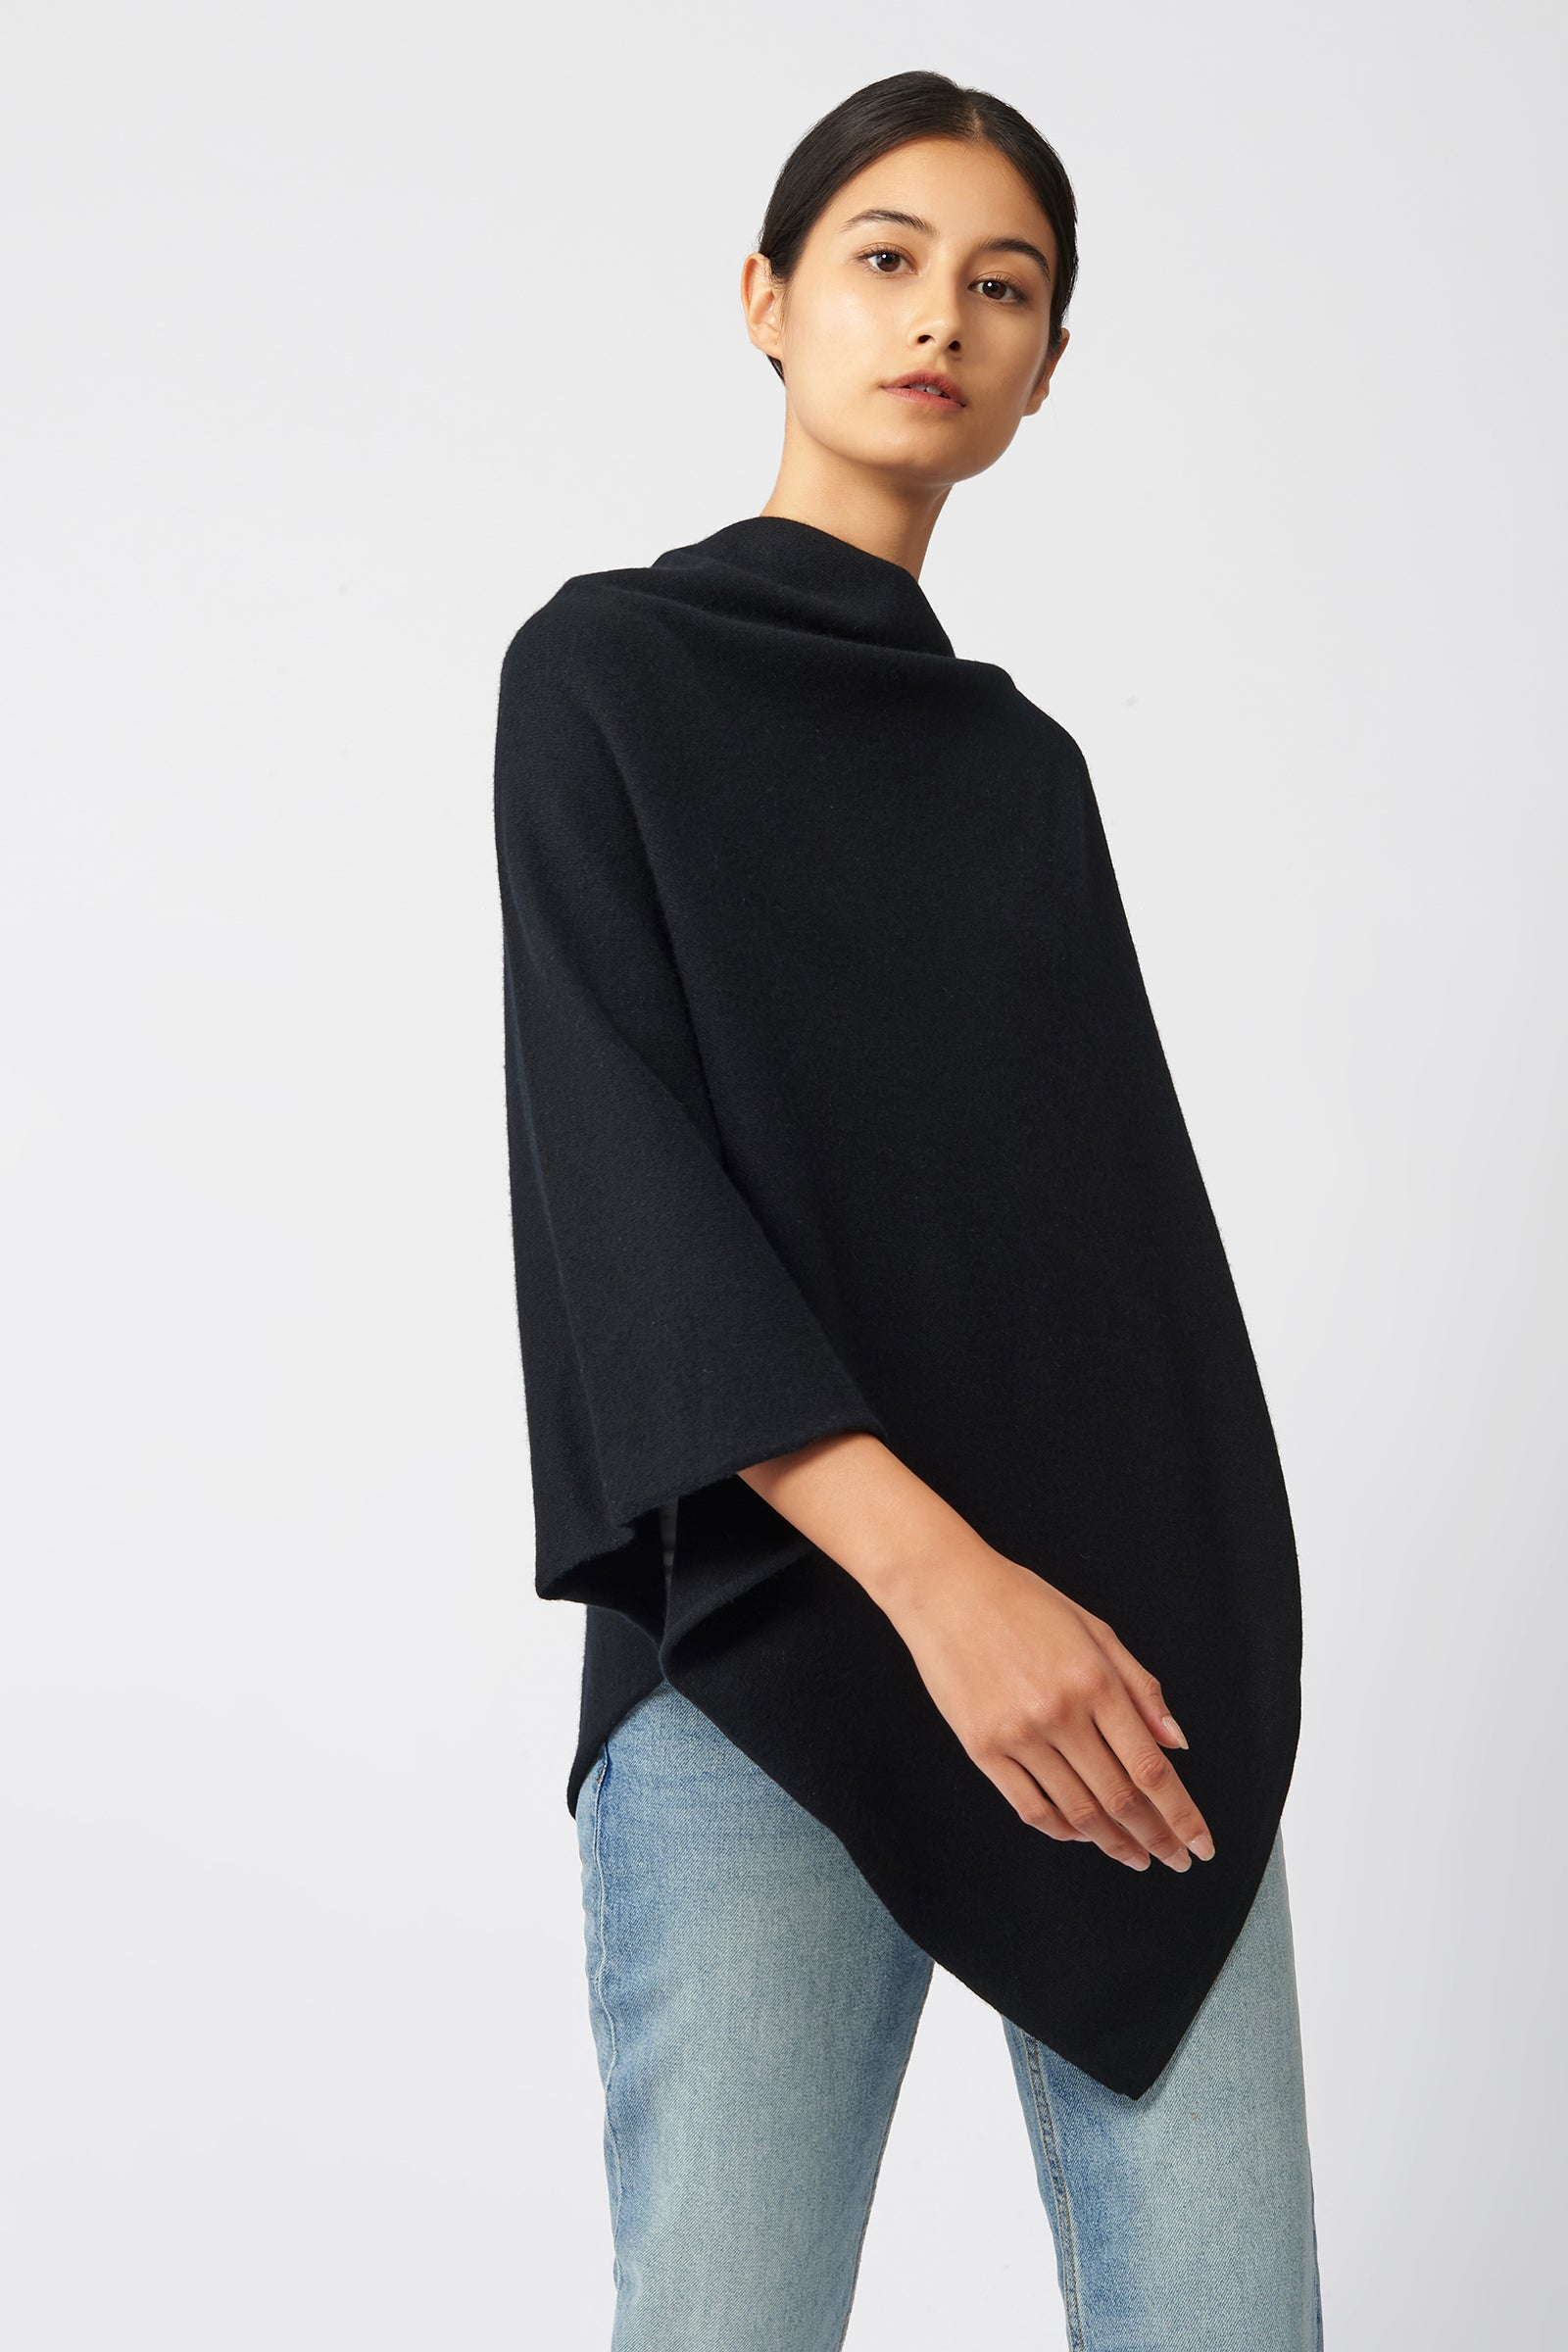 Kal Rieman Cashmere Poncho in Black on Model Side View